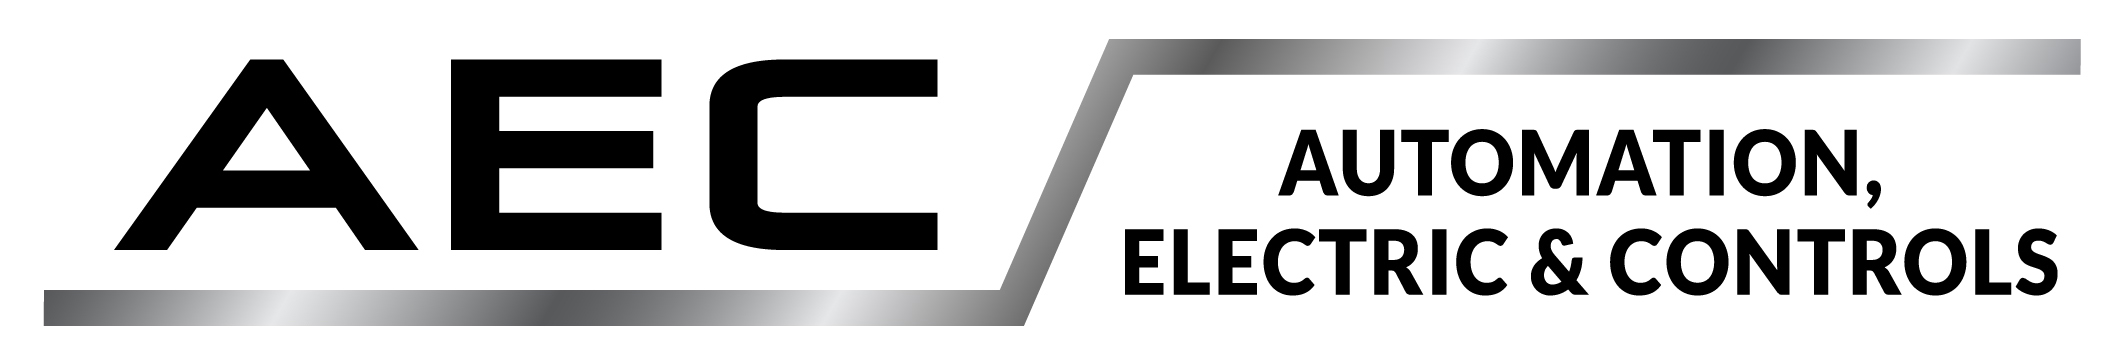 Amaritech Electric & Controls Ltd. Logo